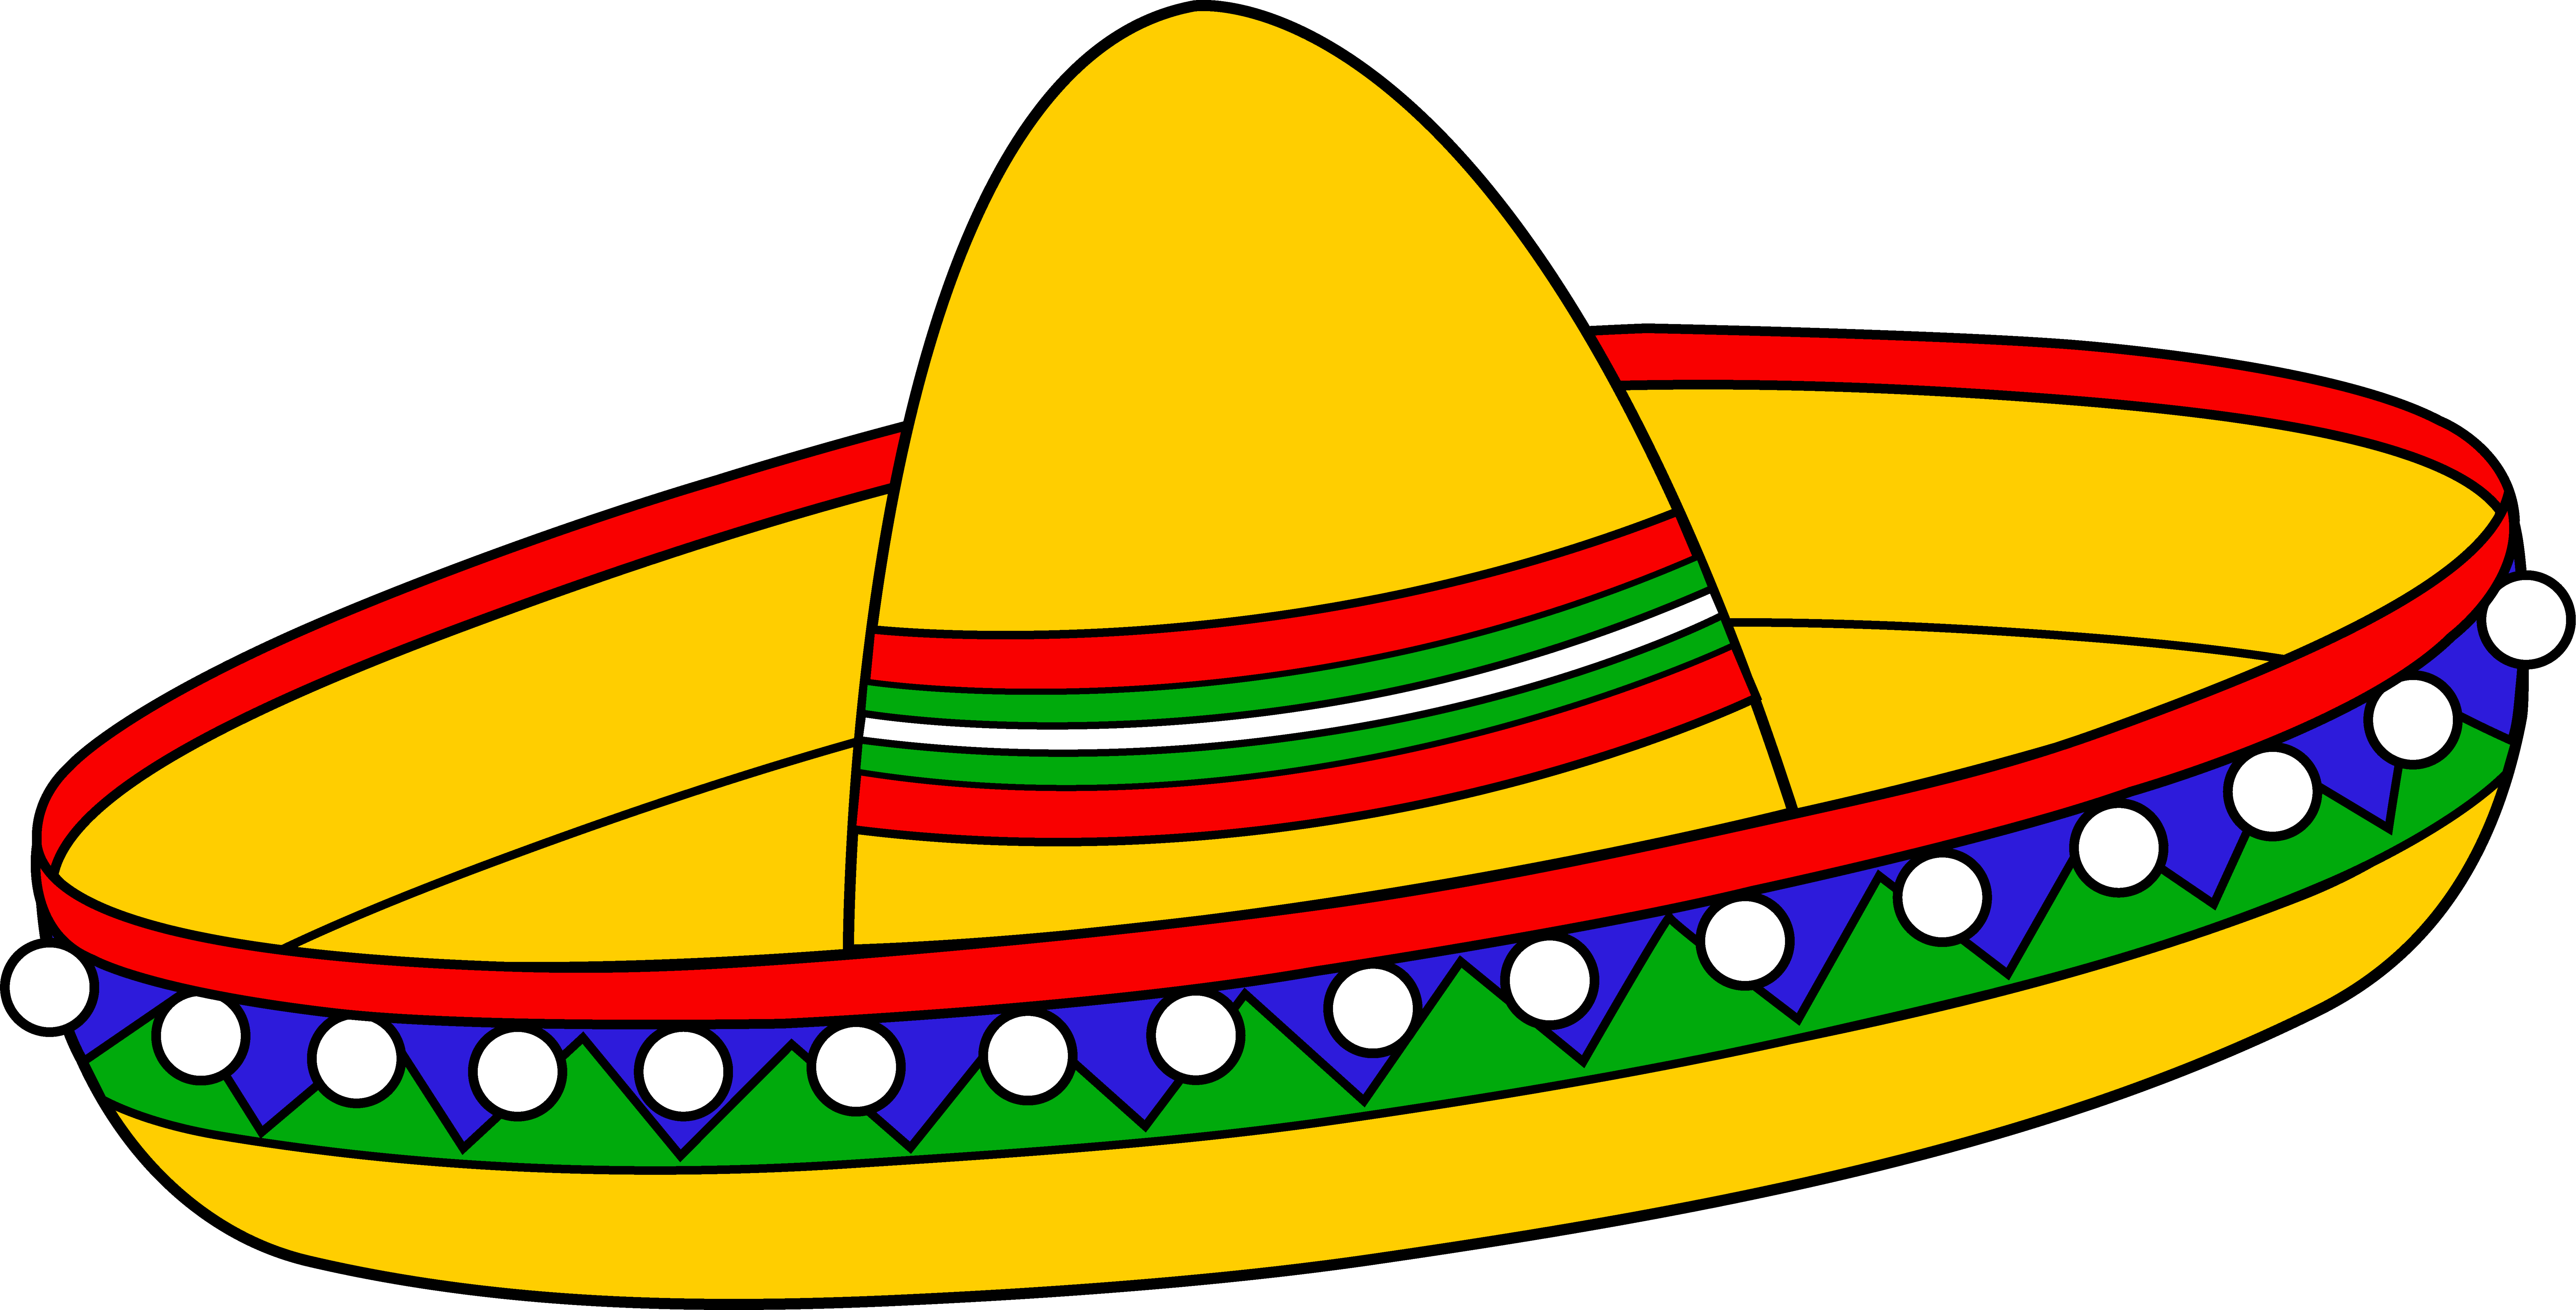 Mexican Man With Sombrero Png - Picture Of Sombrero   Free download best Picture Of Sombrero on ...